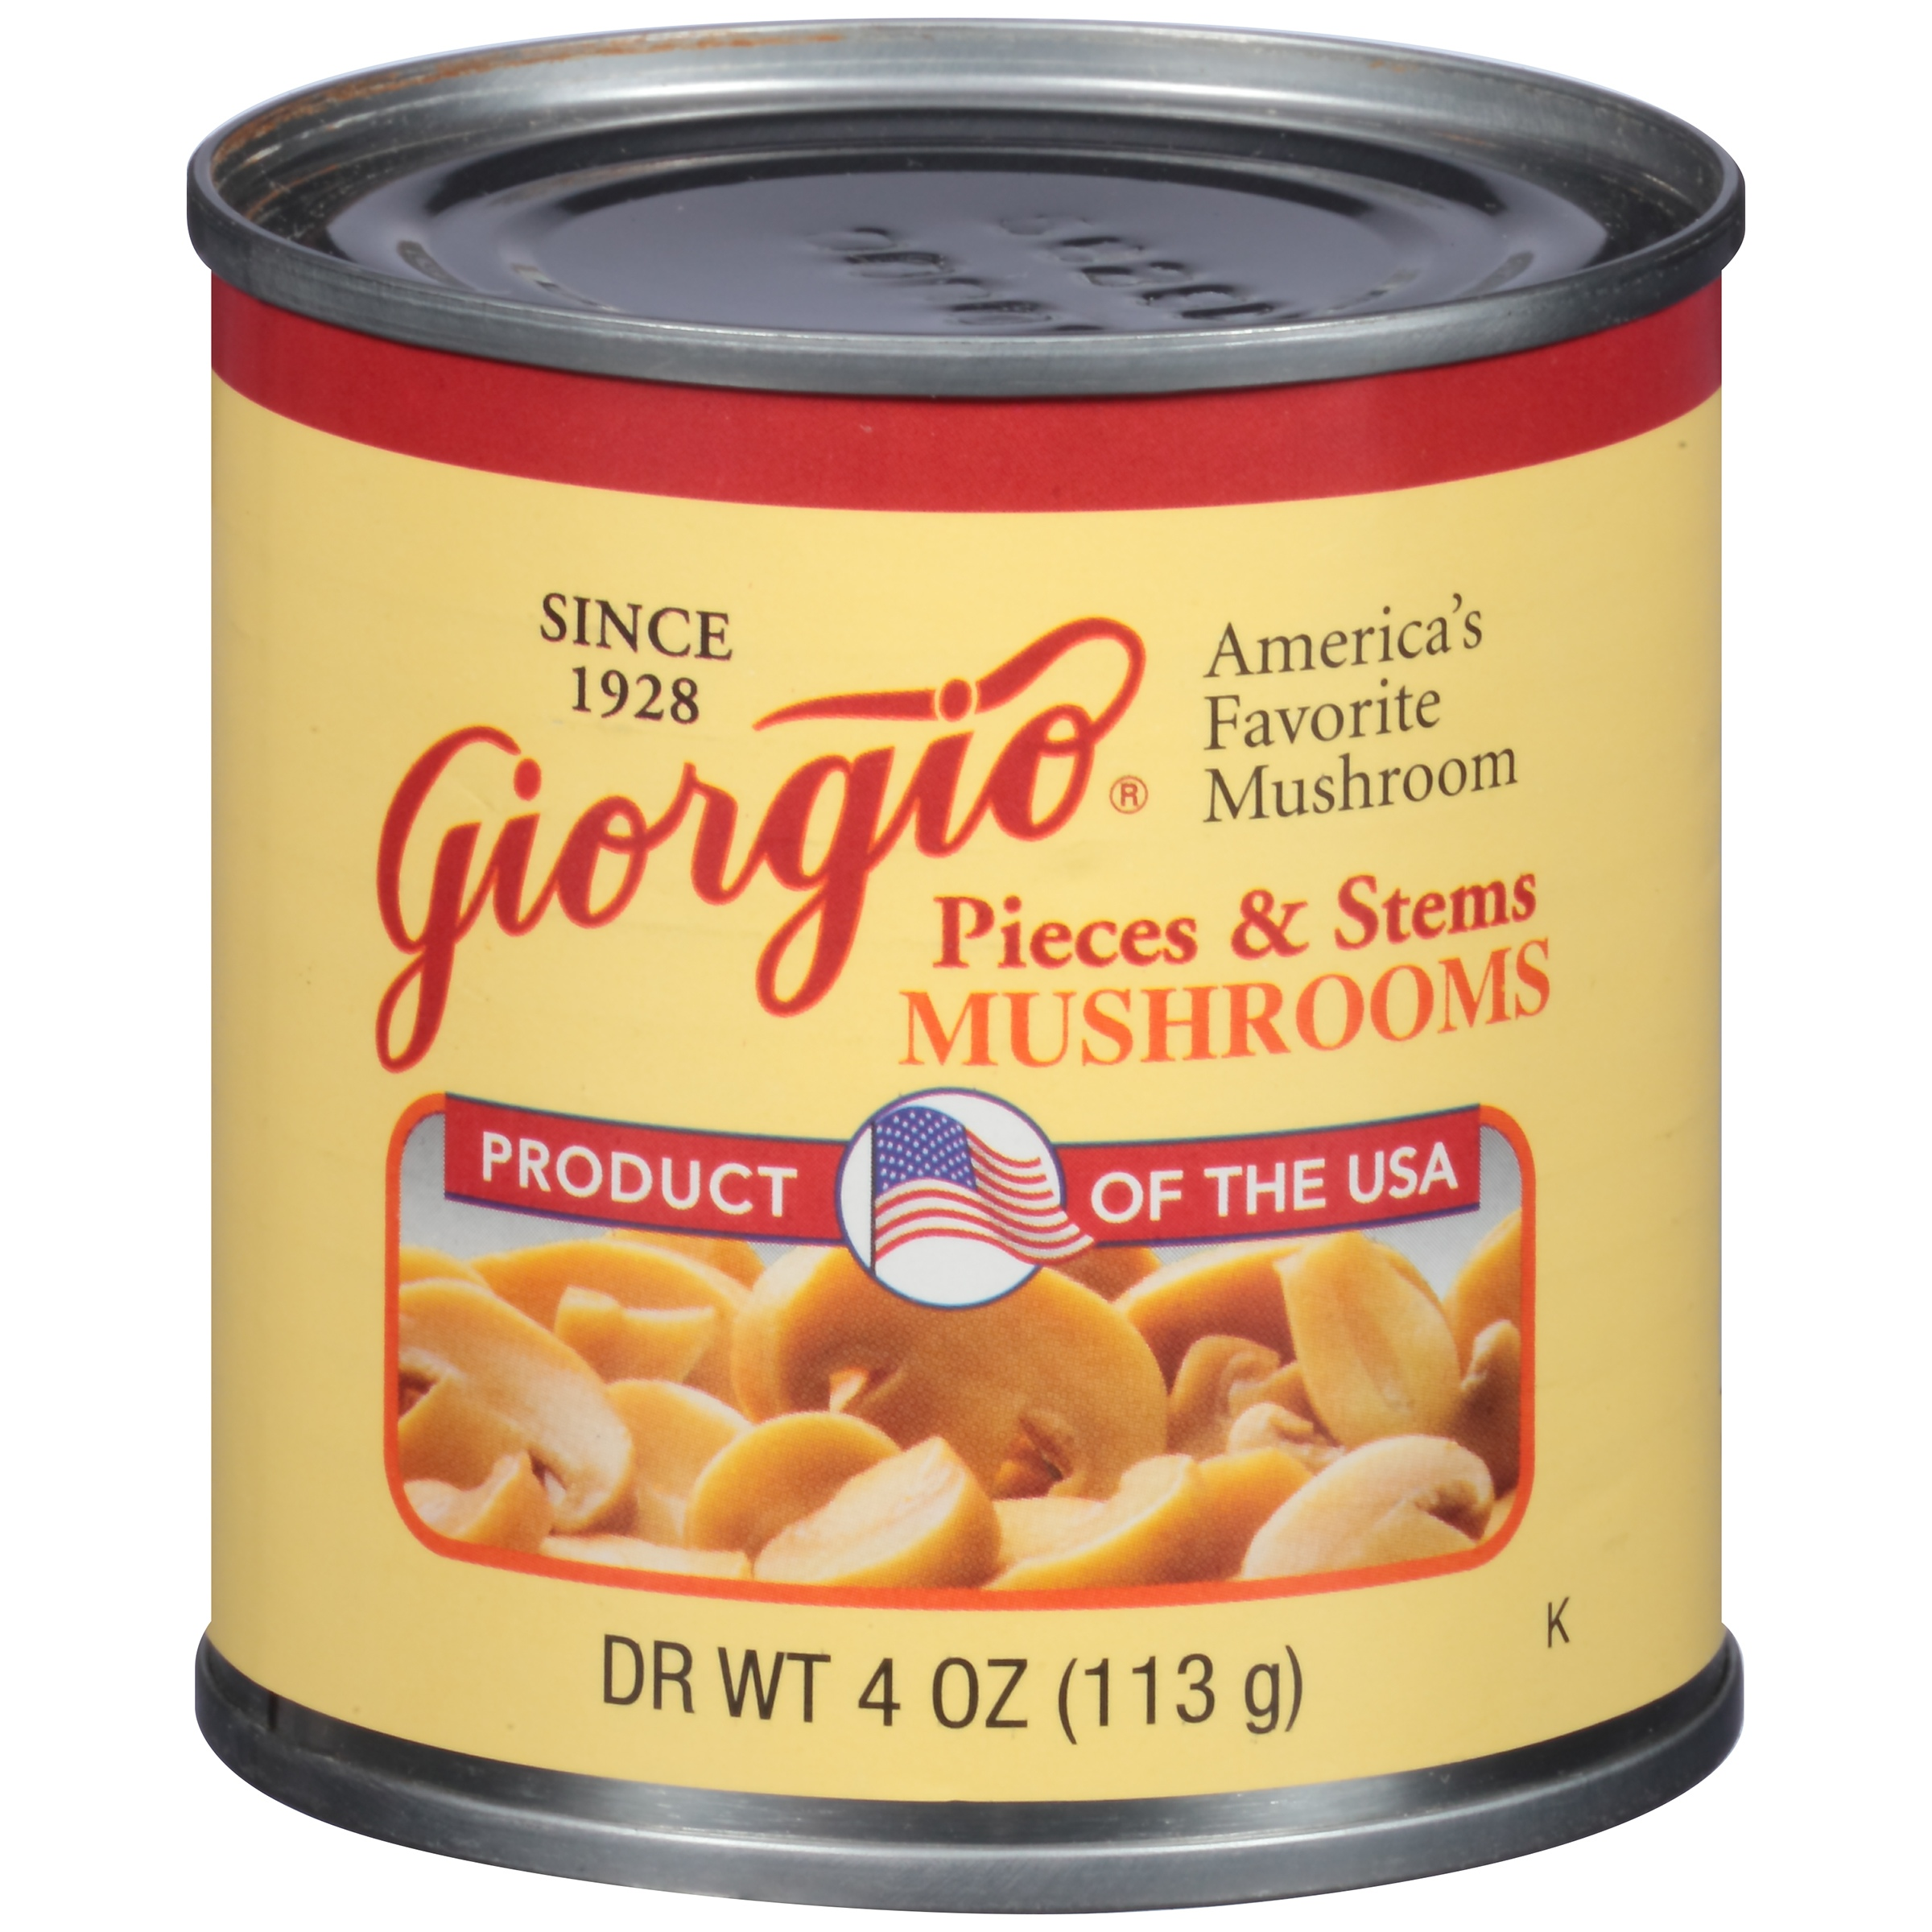 Giorgio Mushrooms Pieces & Stems, 4 oz by Giorgio Foods, Inc.